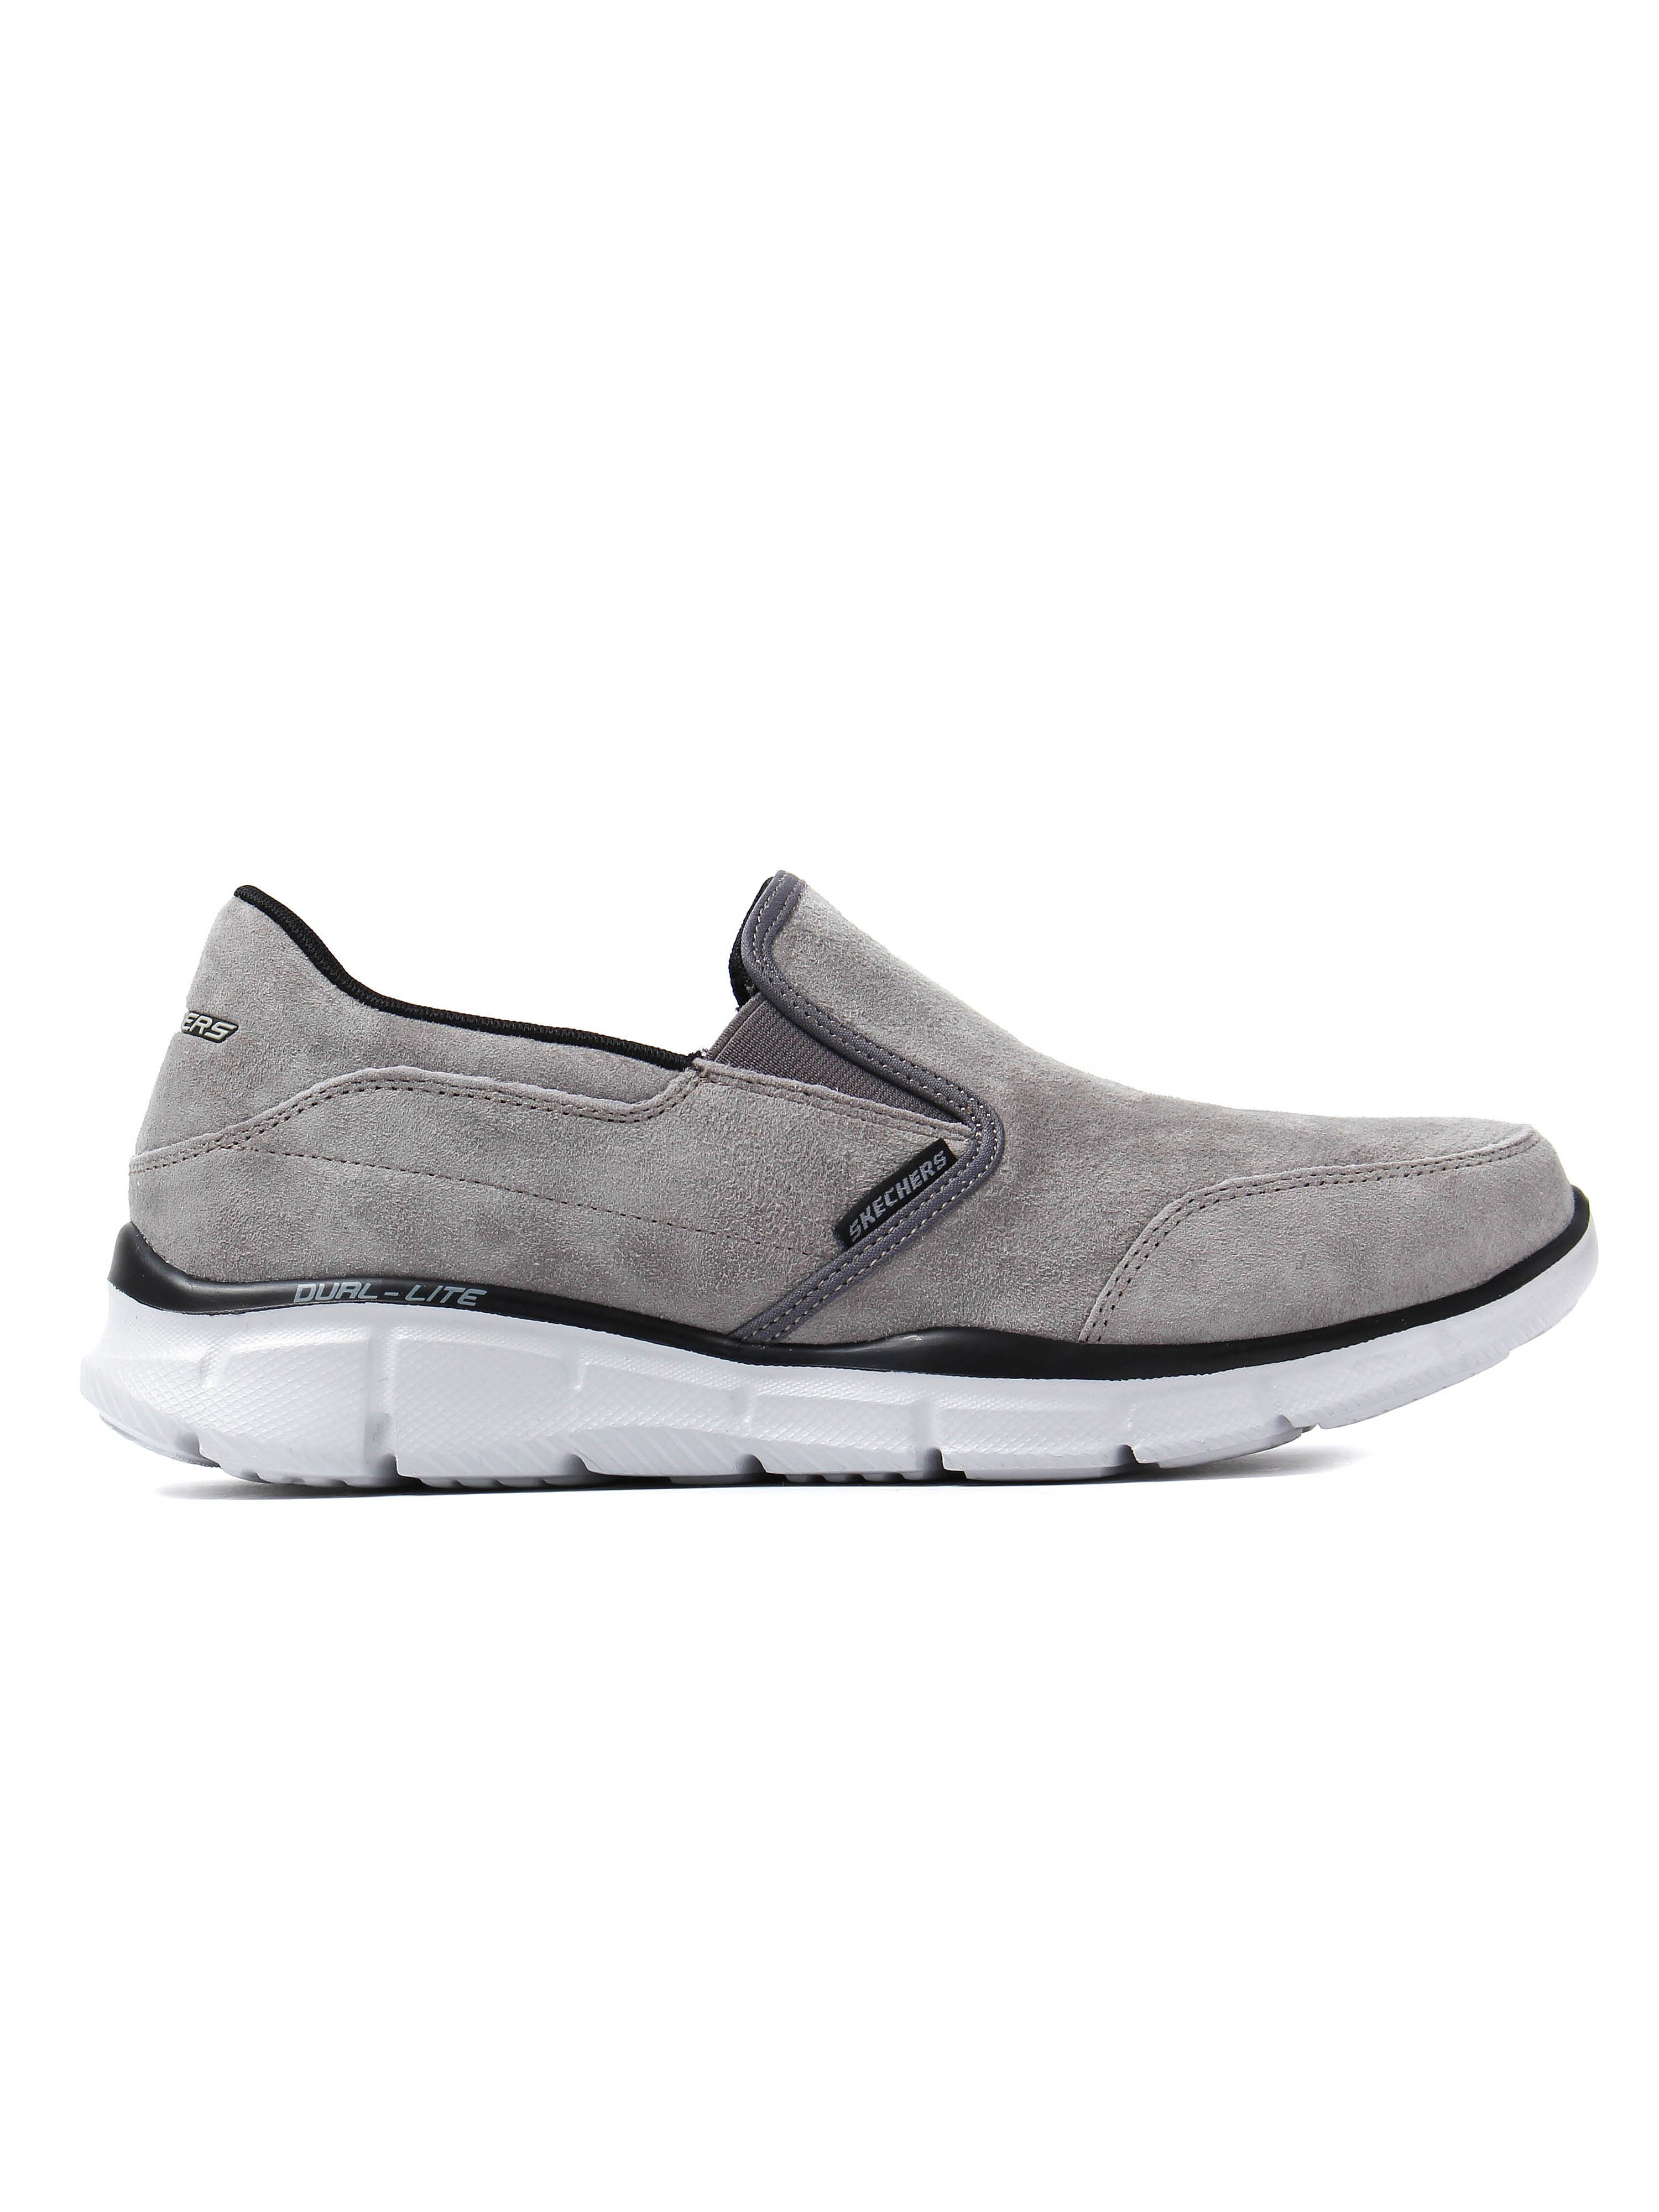 Skechers Men's Equalizer Mind Game - Charcoal Suede